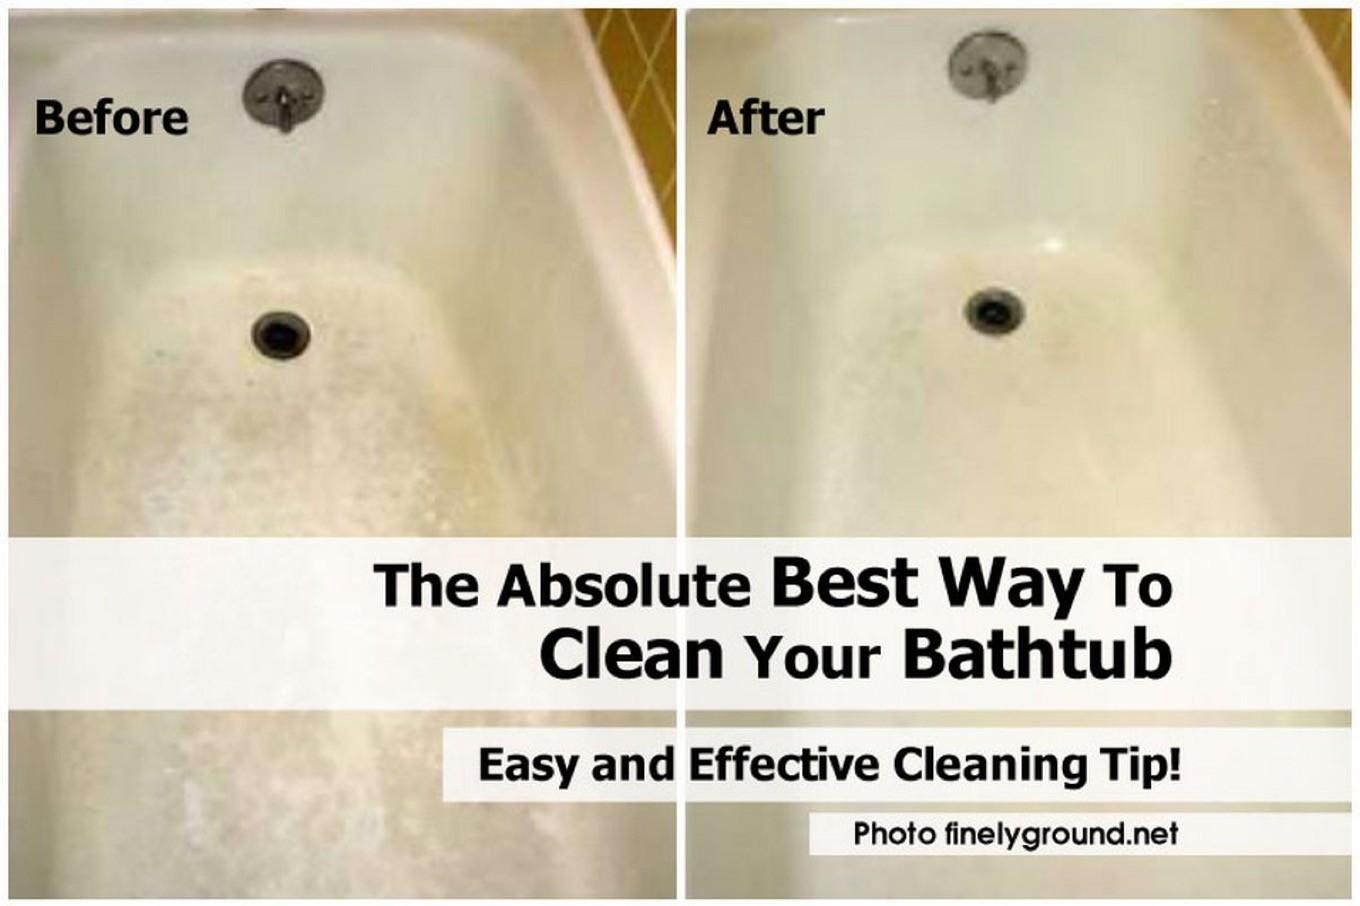 Brain Blowing How To Clean Your Bathtub That Will Instantly Chill